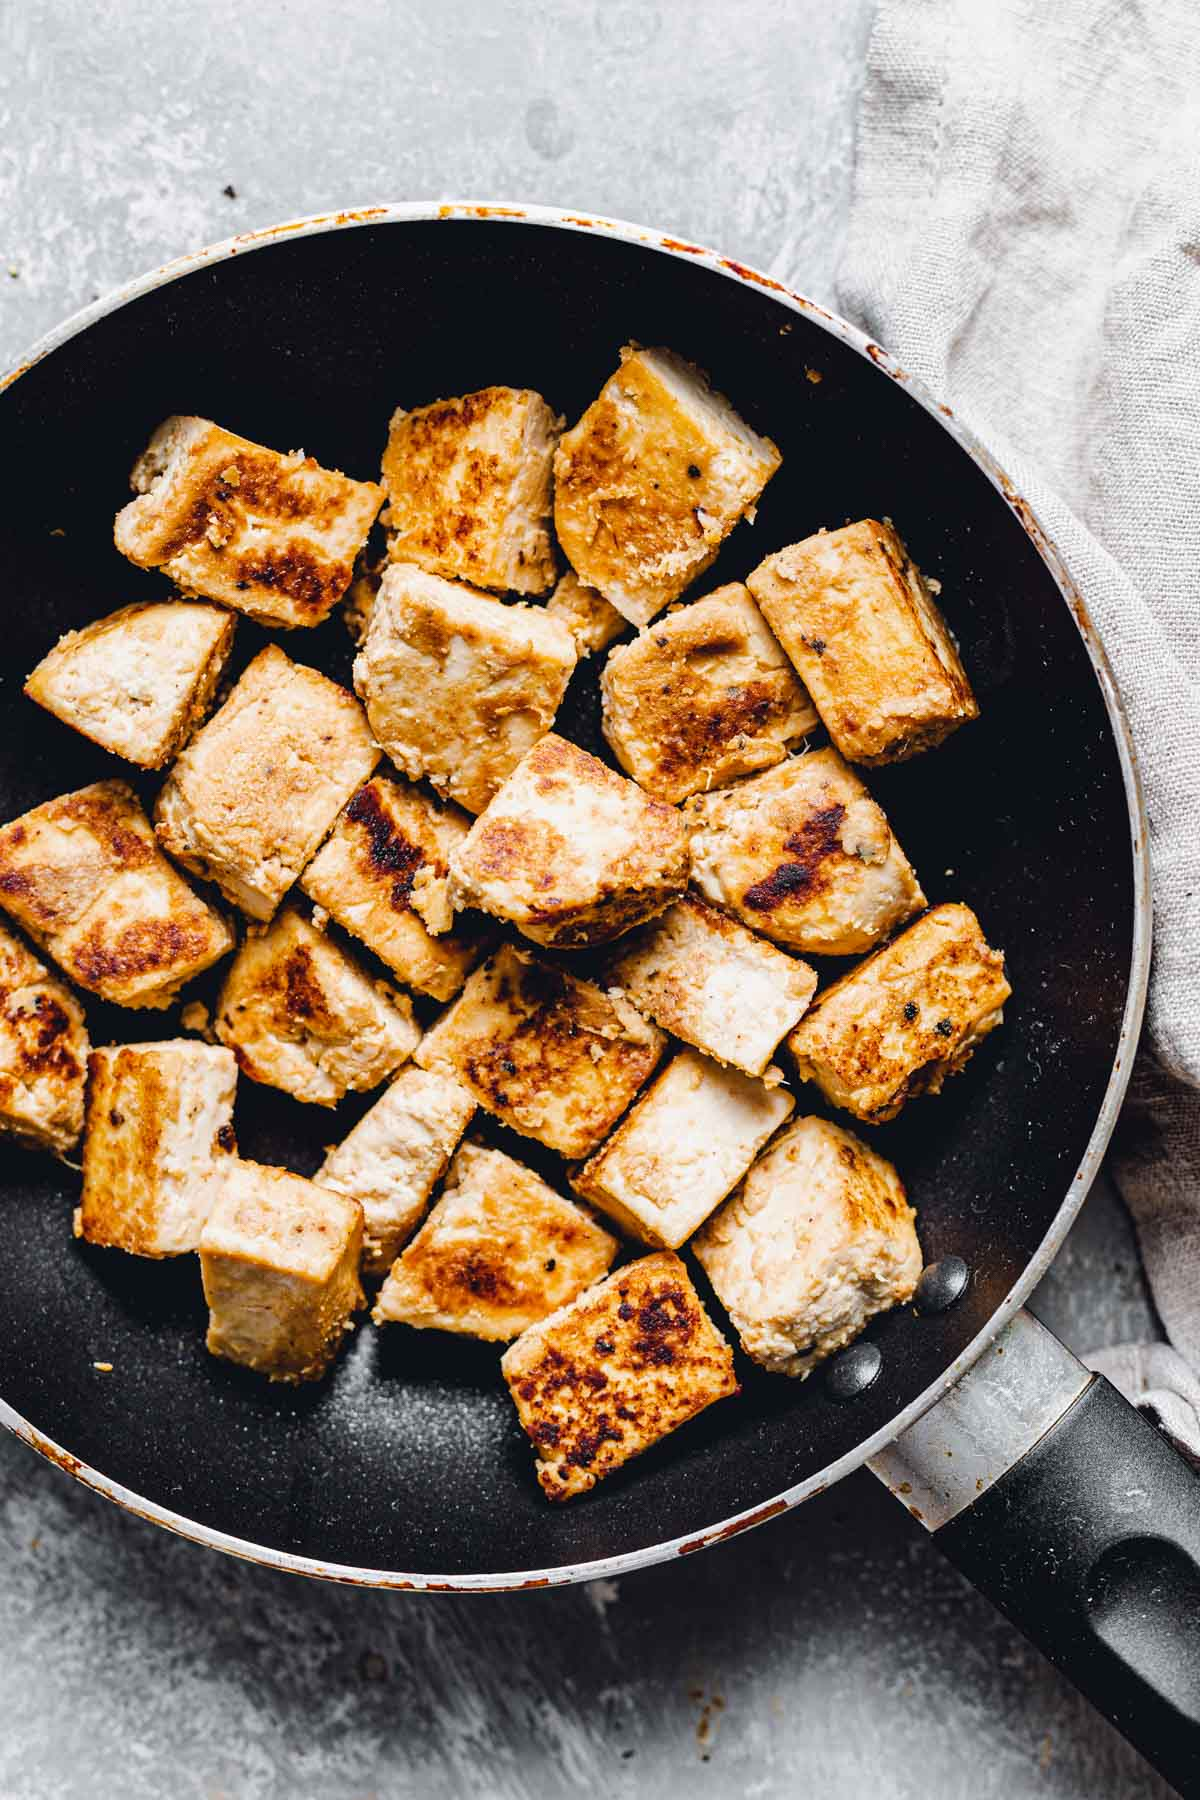 An overhead view of a large black frying pan with tofu cubes in it.